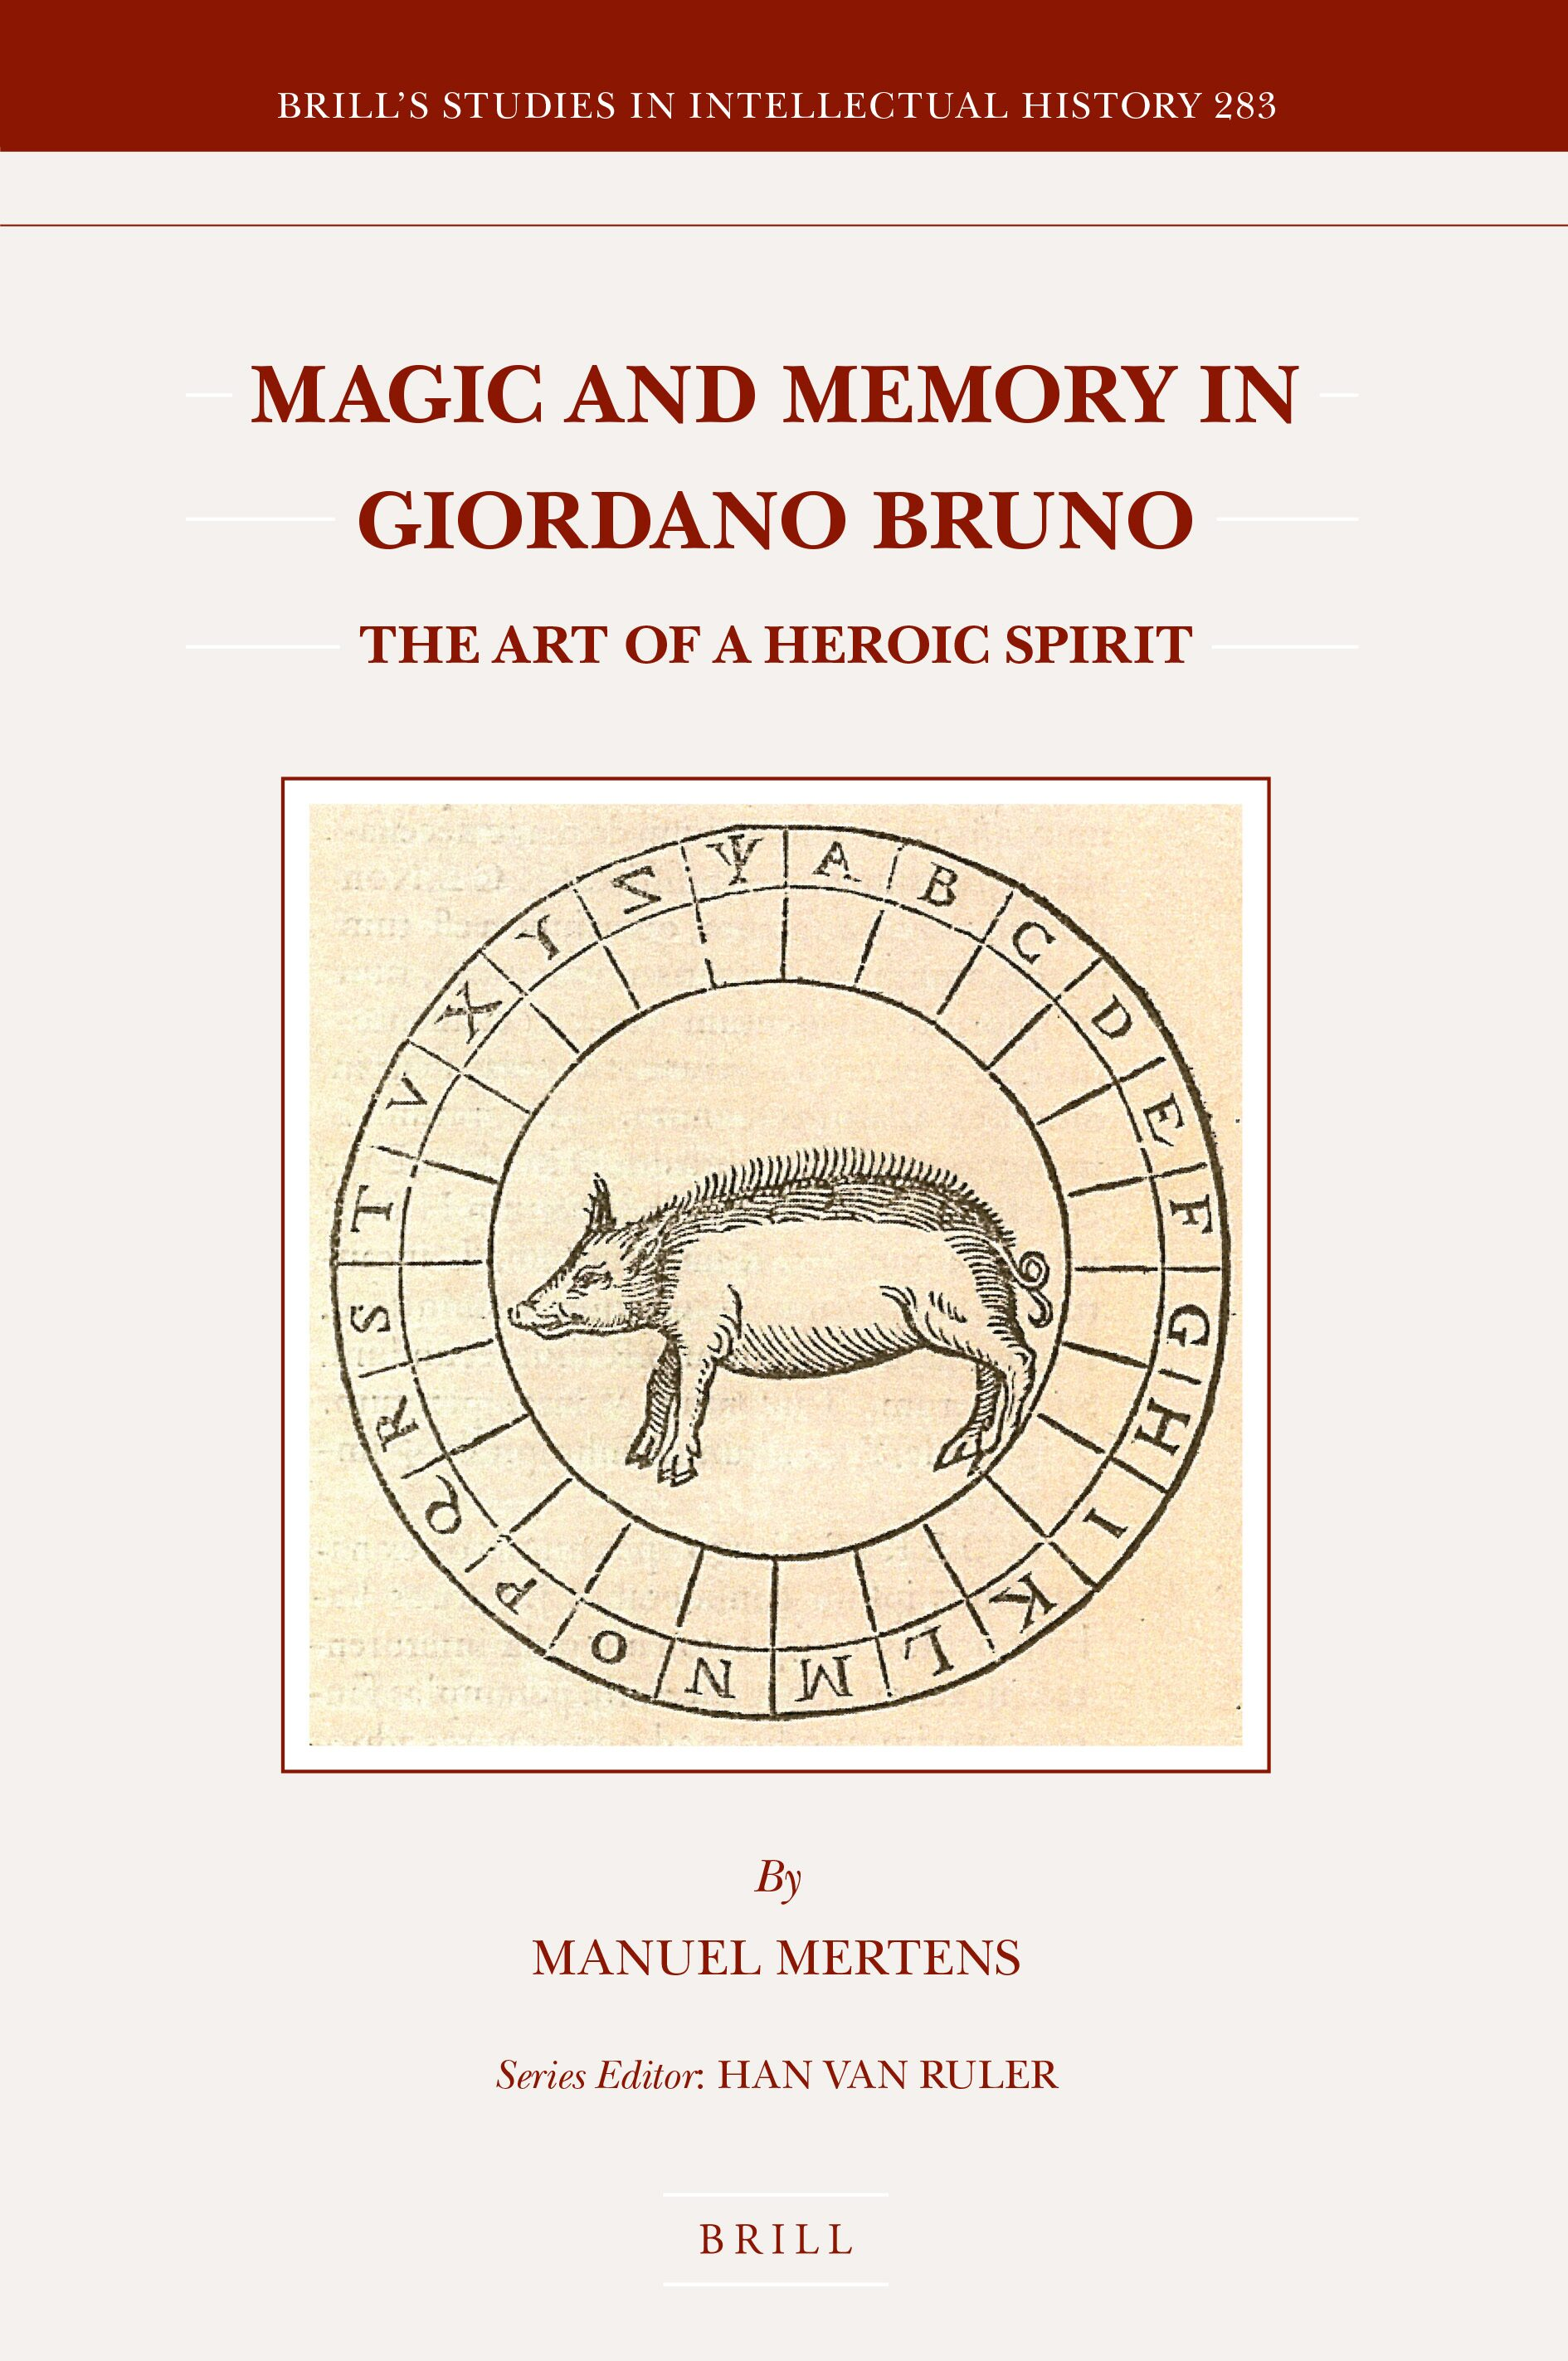 Magic And Memory In Giordano Bruno Towards A More